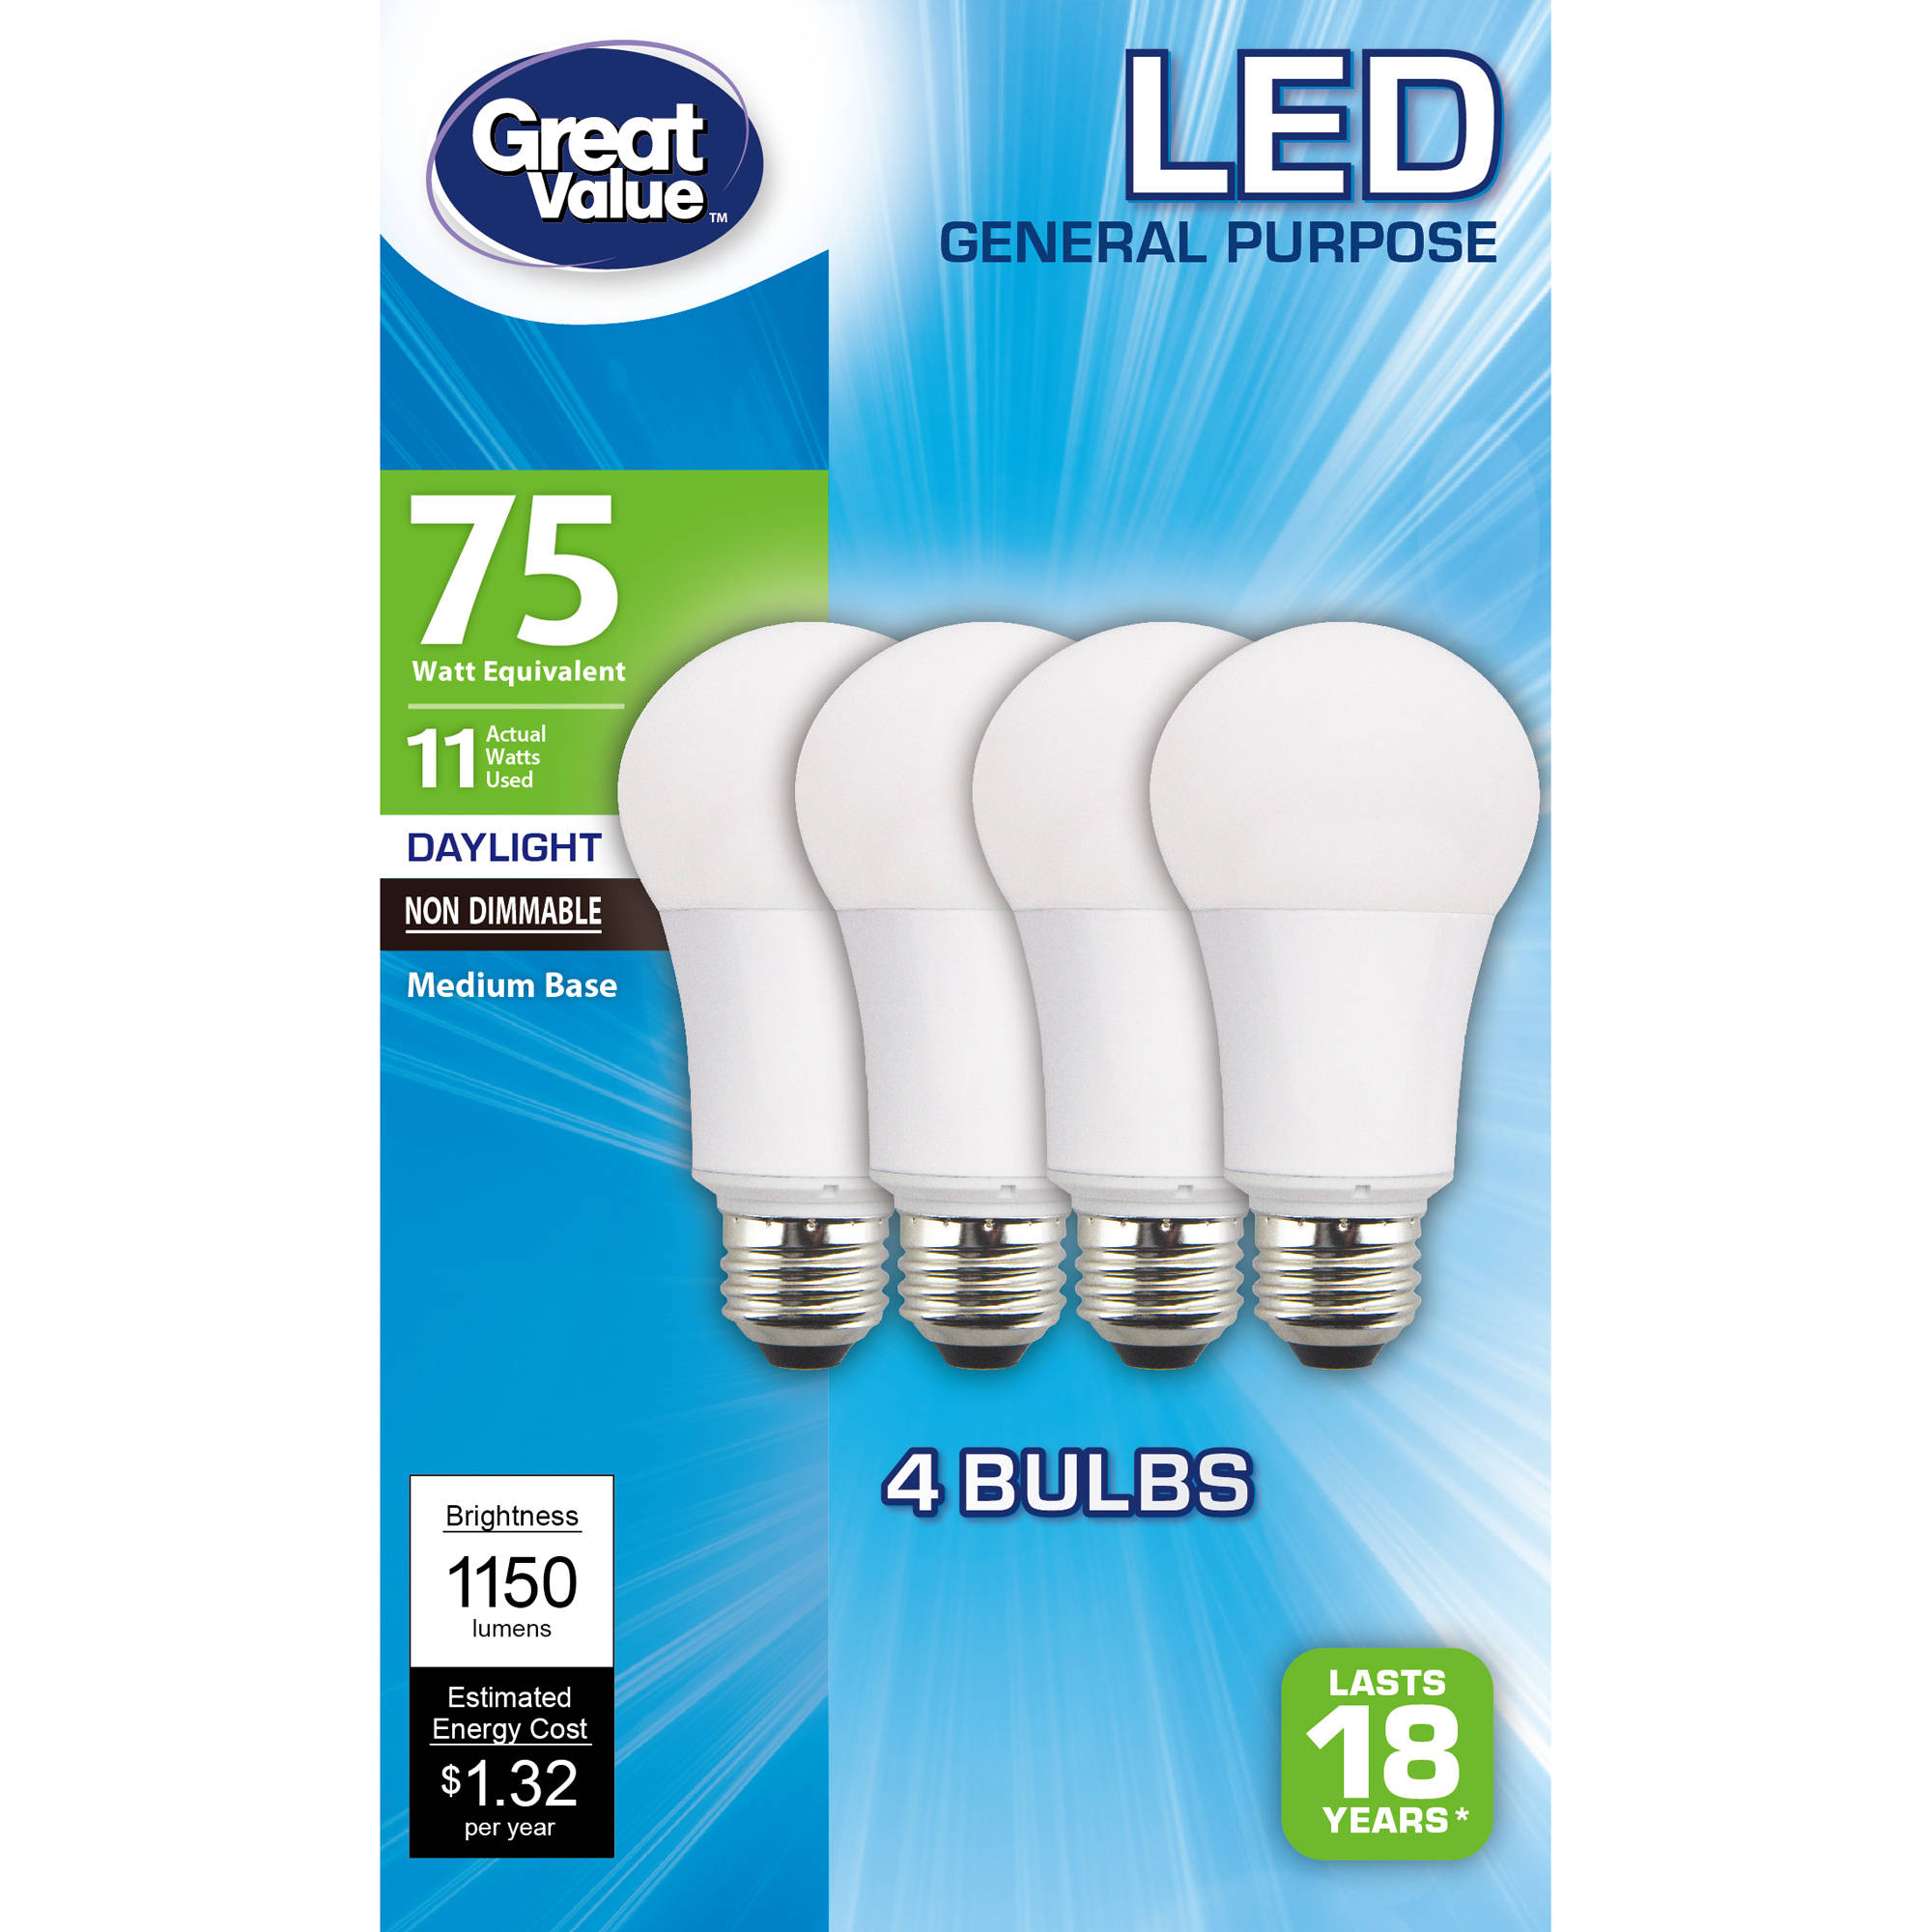 Great Value LED A15 (E26) Light Bulbs 11W (75W Equivalent), Daylight, 4-Pack